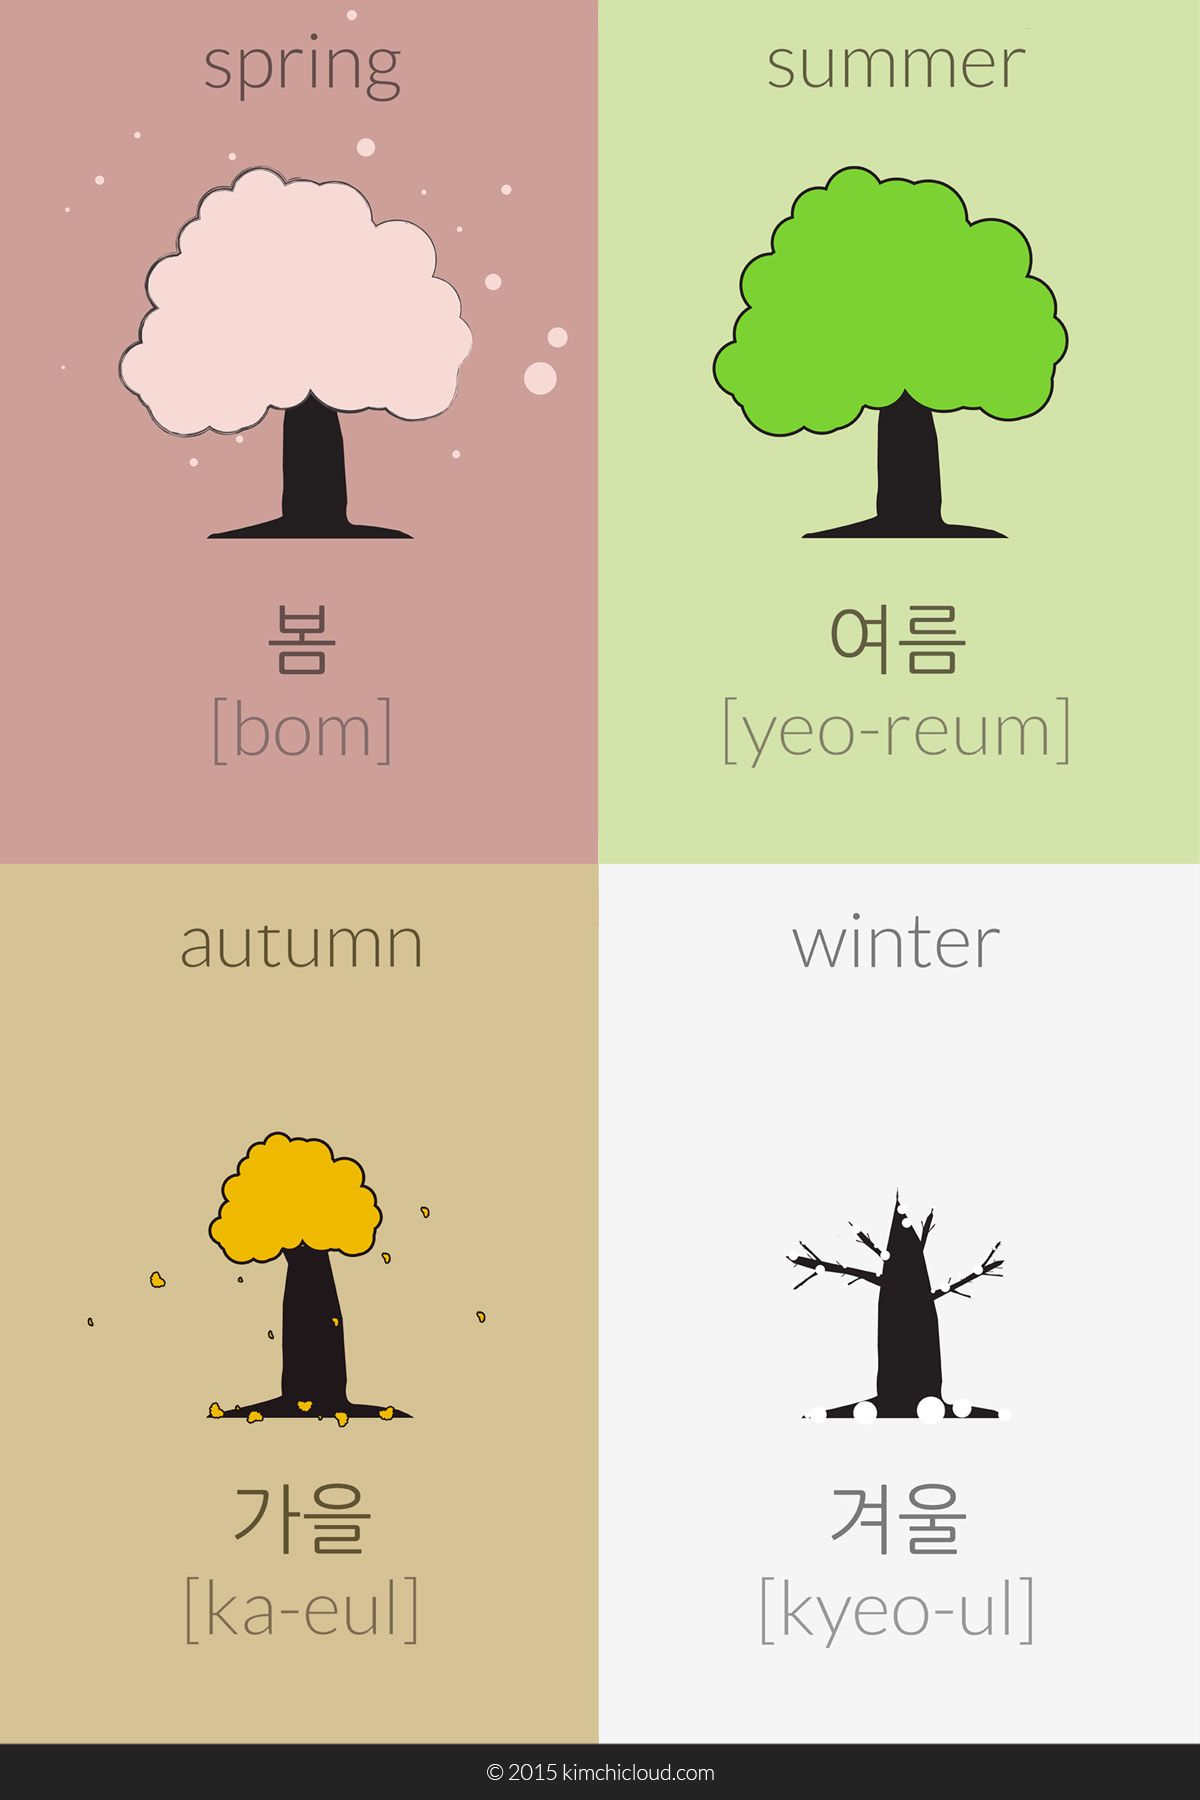 The Words For The Four Seasons In Korean Are Summer Spring Bom Yeo Reum Autumn